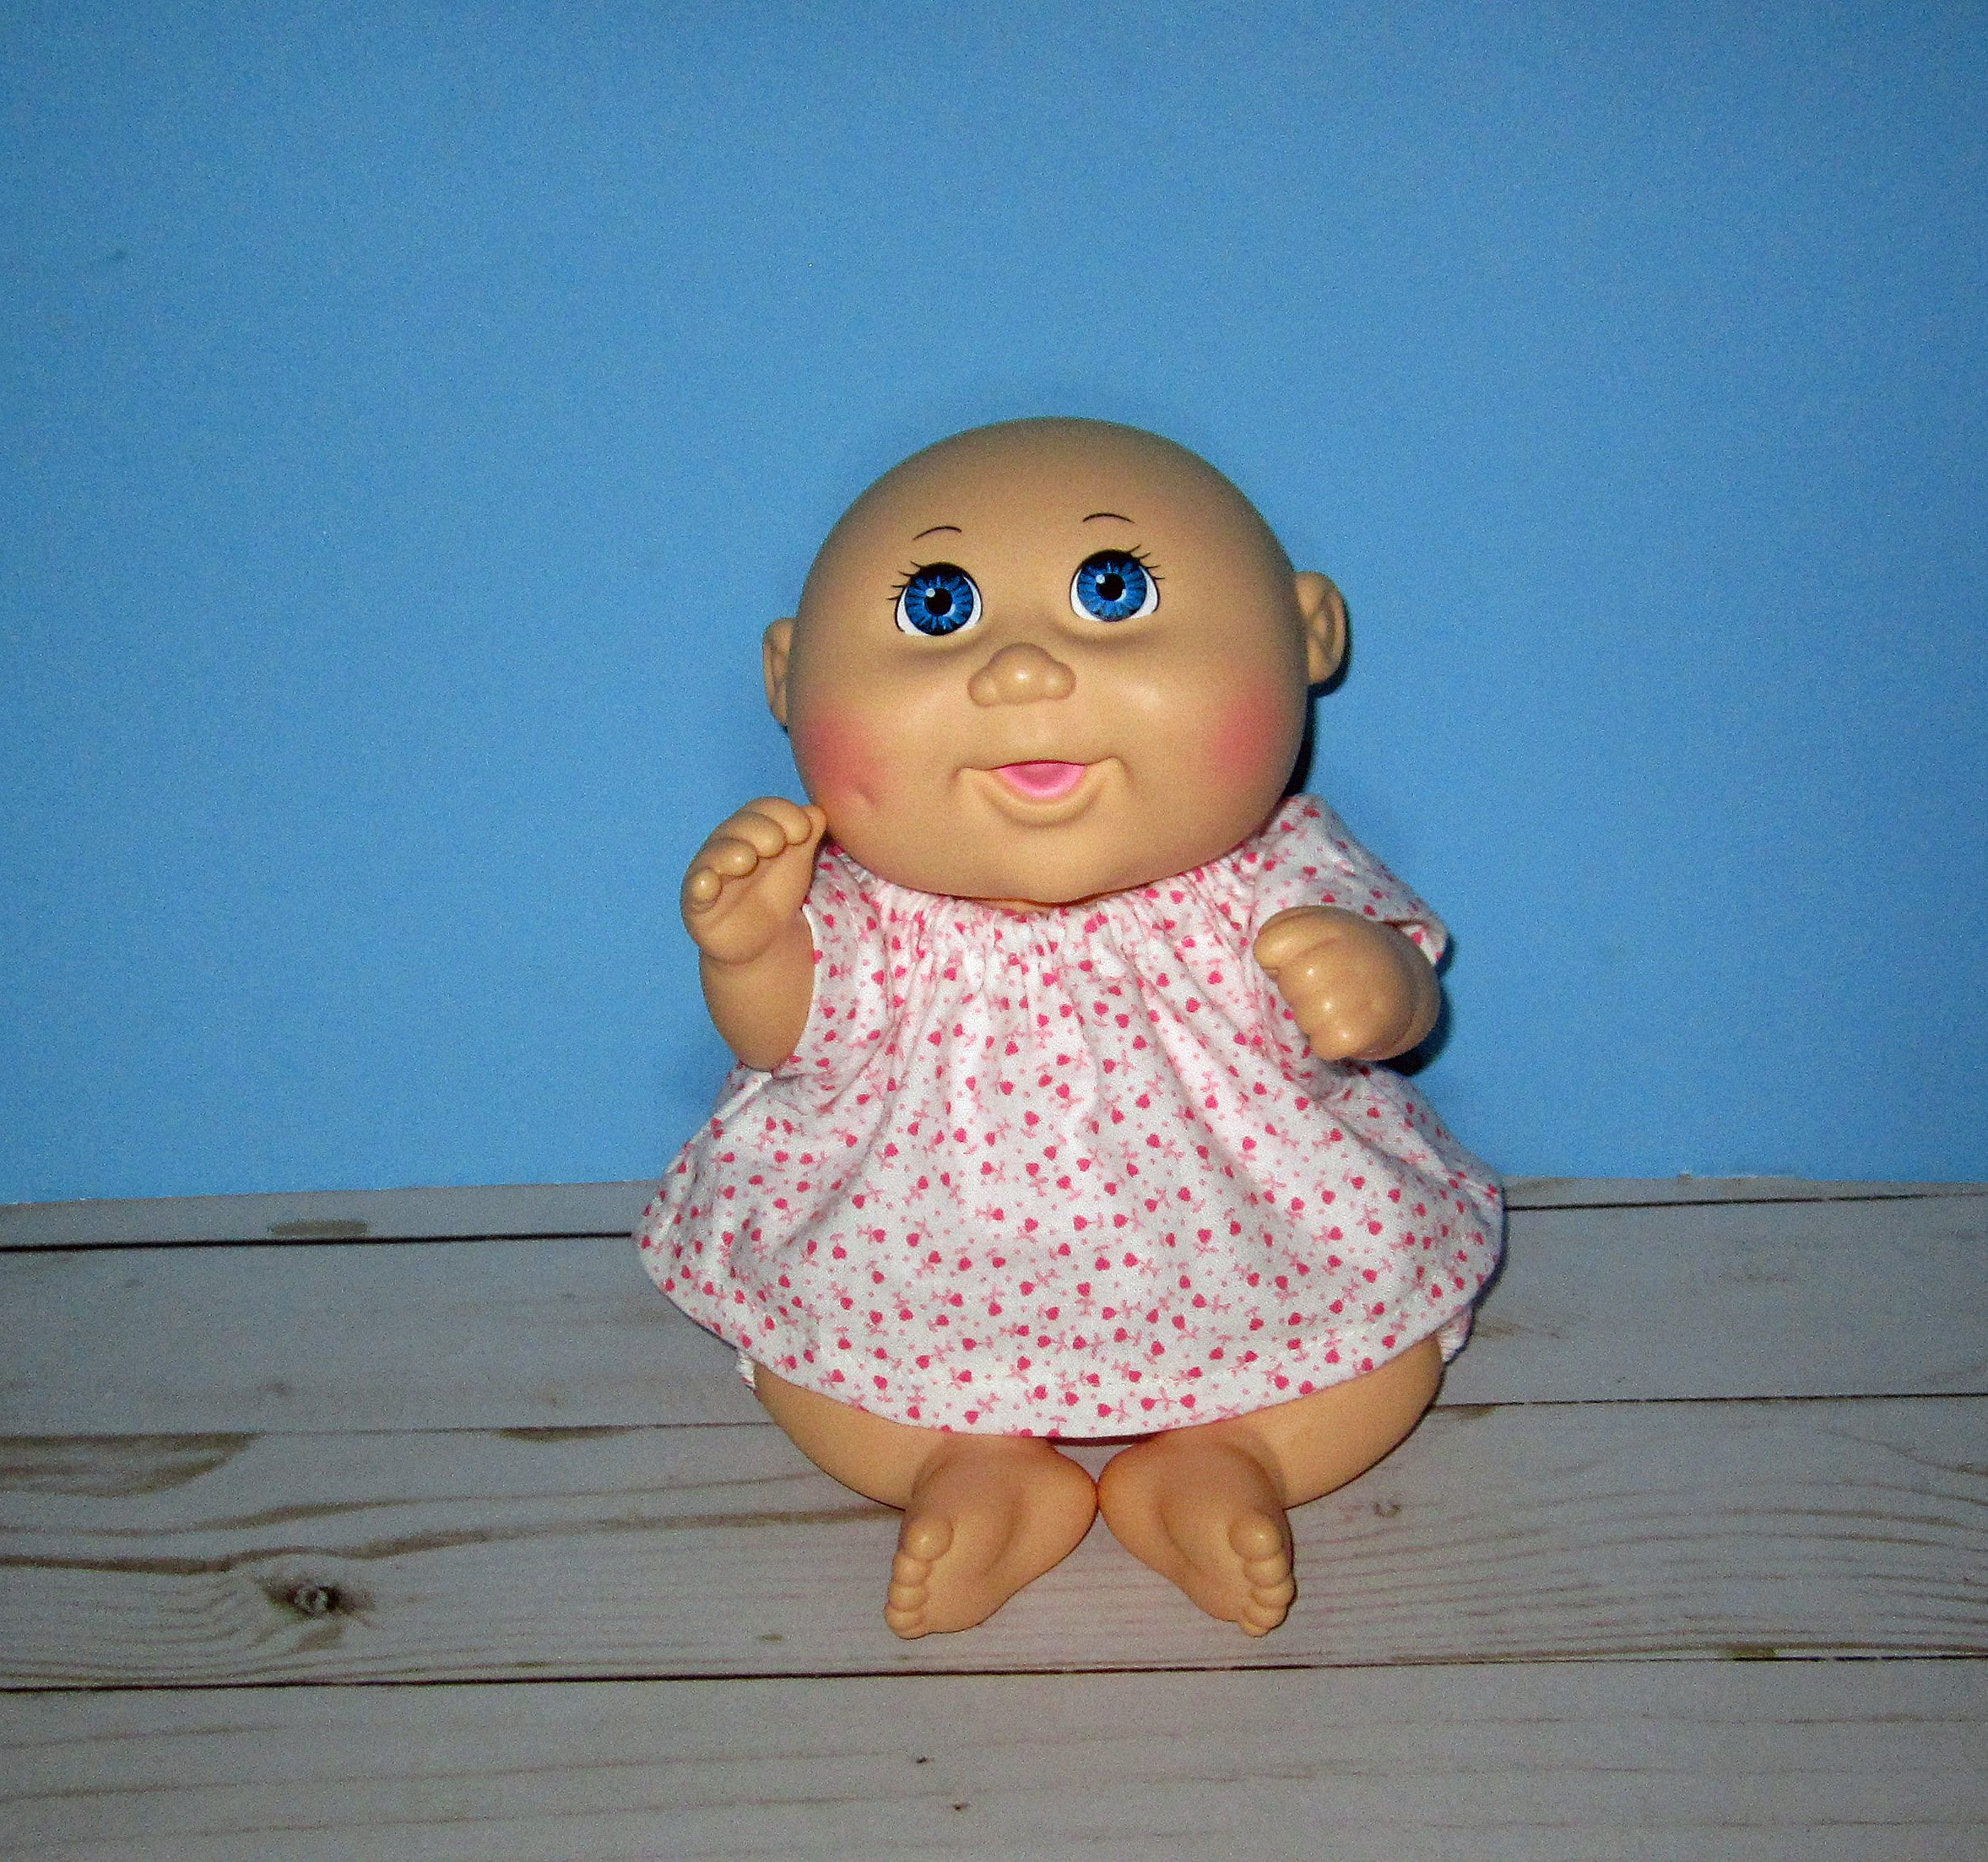 Cabbage Patch Tiny Newborn 9 Dolls Top And Short Set Etsy Cabbage Patch Baby Doll Clothes Newborn Baby Dolls